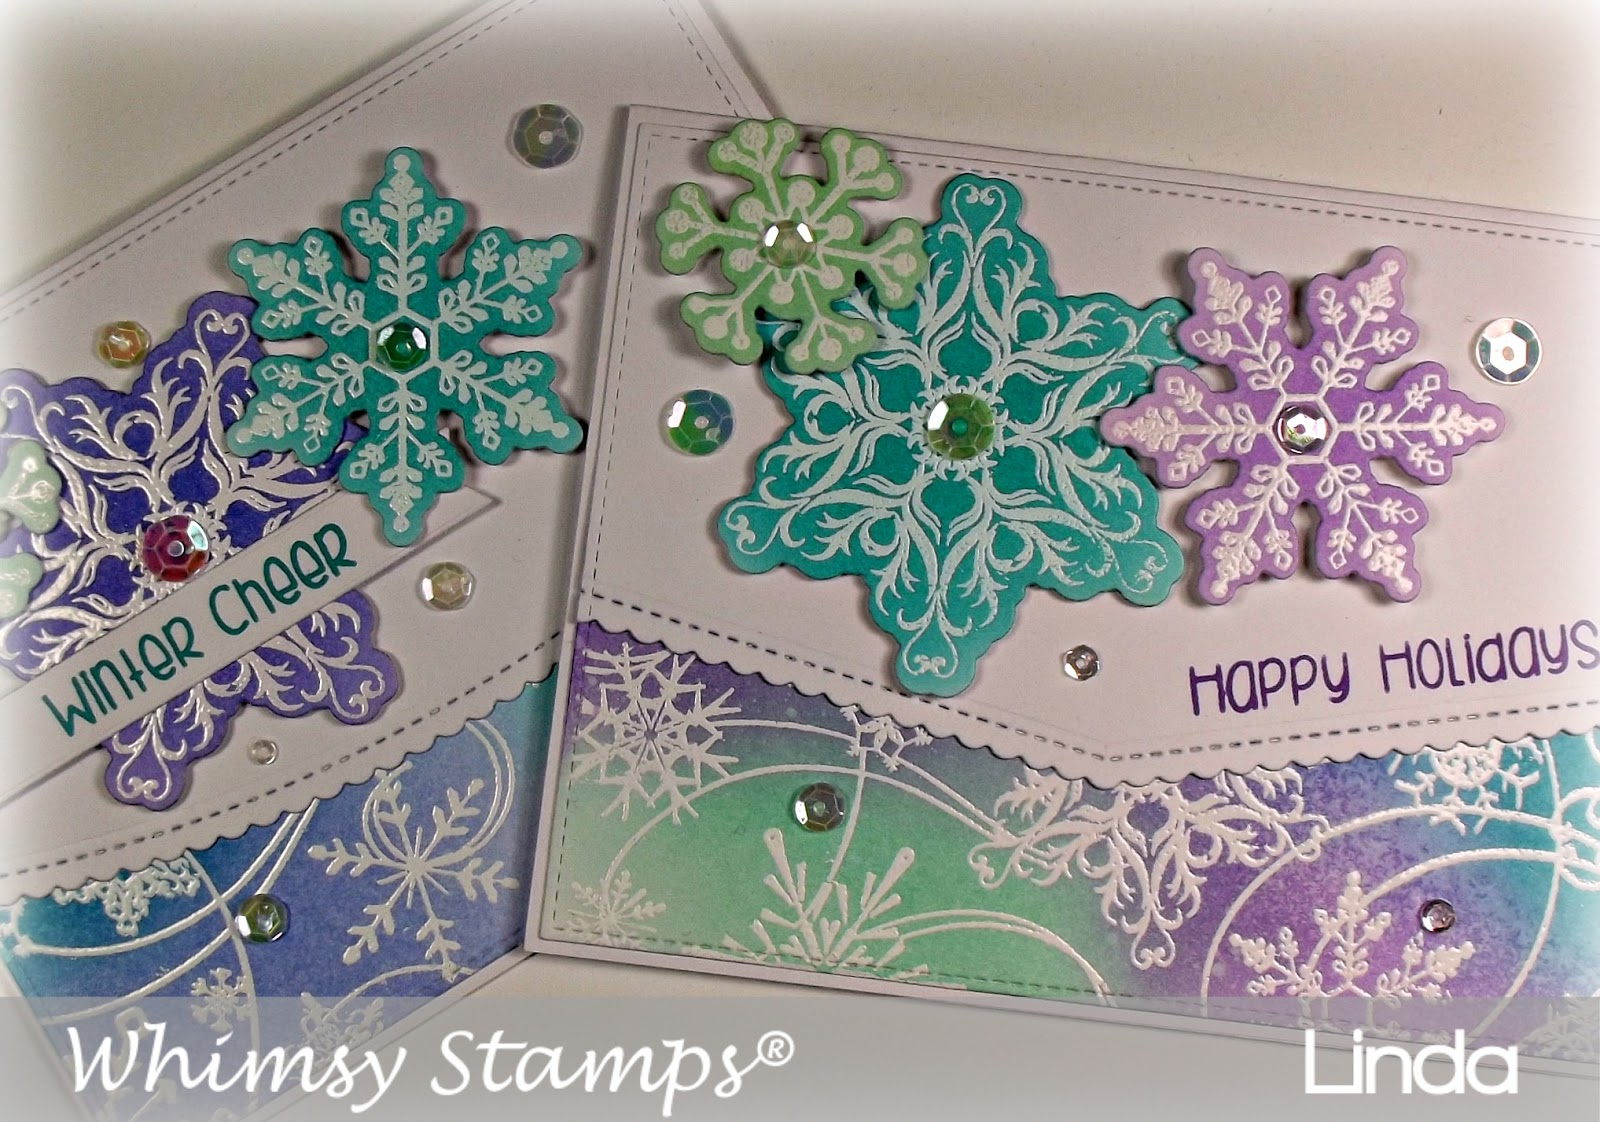 Whimsy Stamps Snow Flurry Background에 대한 이미지 검색결과